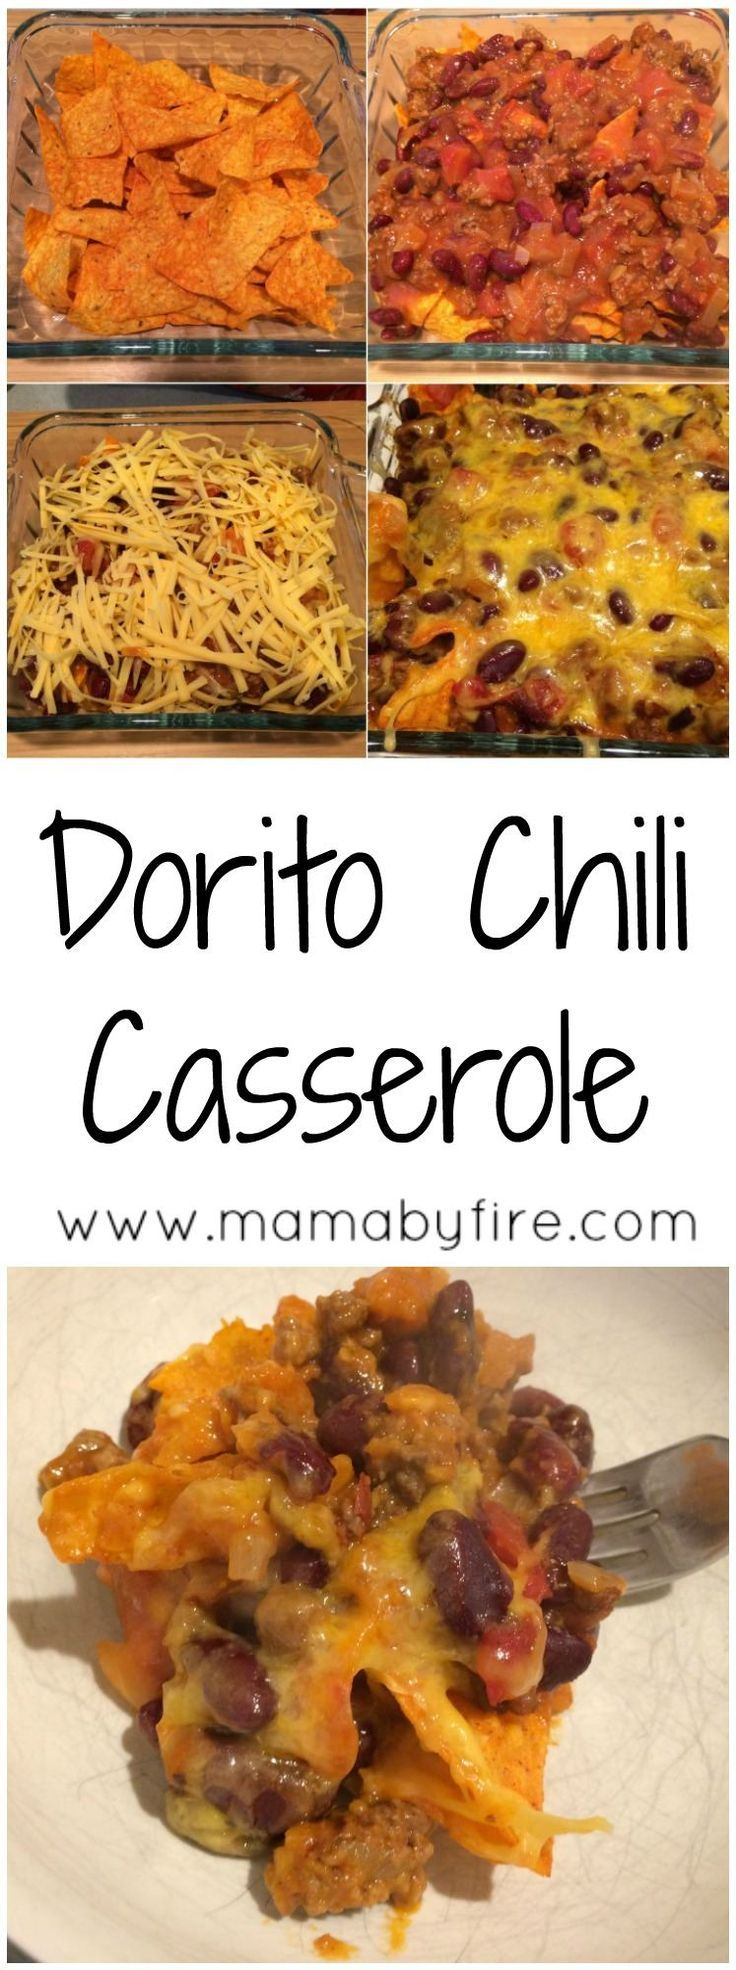 This Dorito Chili Casserole is a great dish for your next football party! It's super easy and delicious!